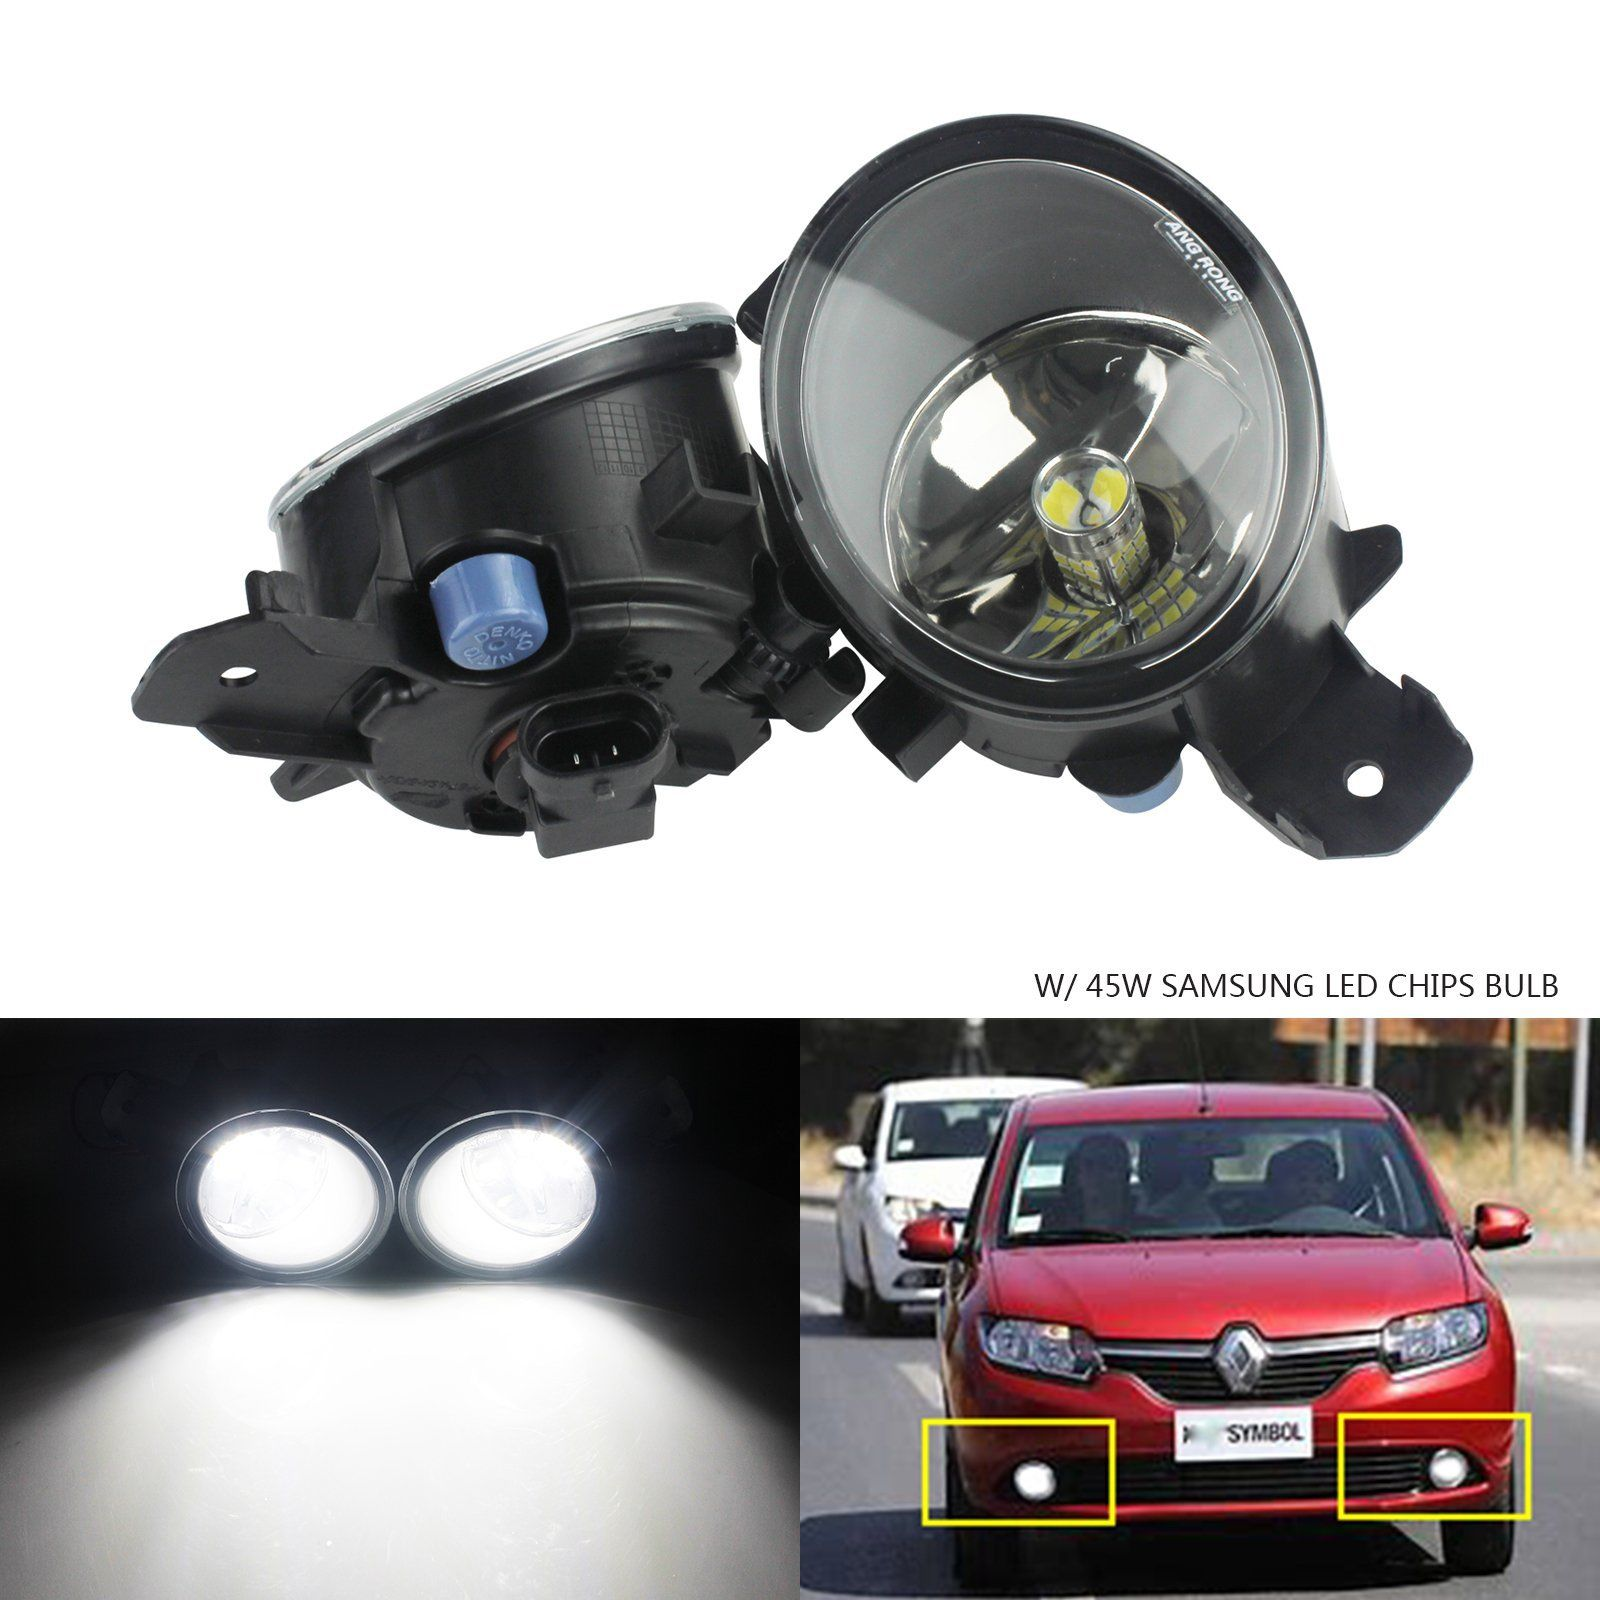 ANGRONG For <font><b>Renault</b></font> Clio Koelos <font><b>Modus</b></font> Vel Satis Front Fog Light Lamp +45W SAMSUNG <font><b>LED</b></font> Bulbs image